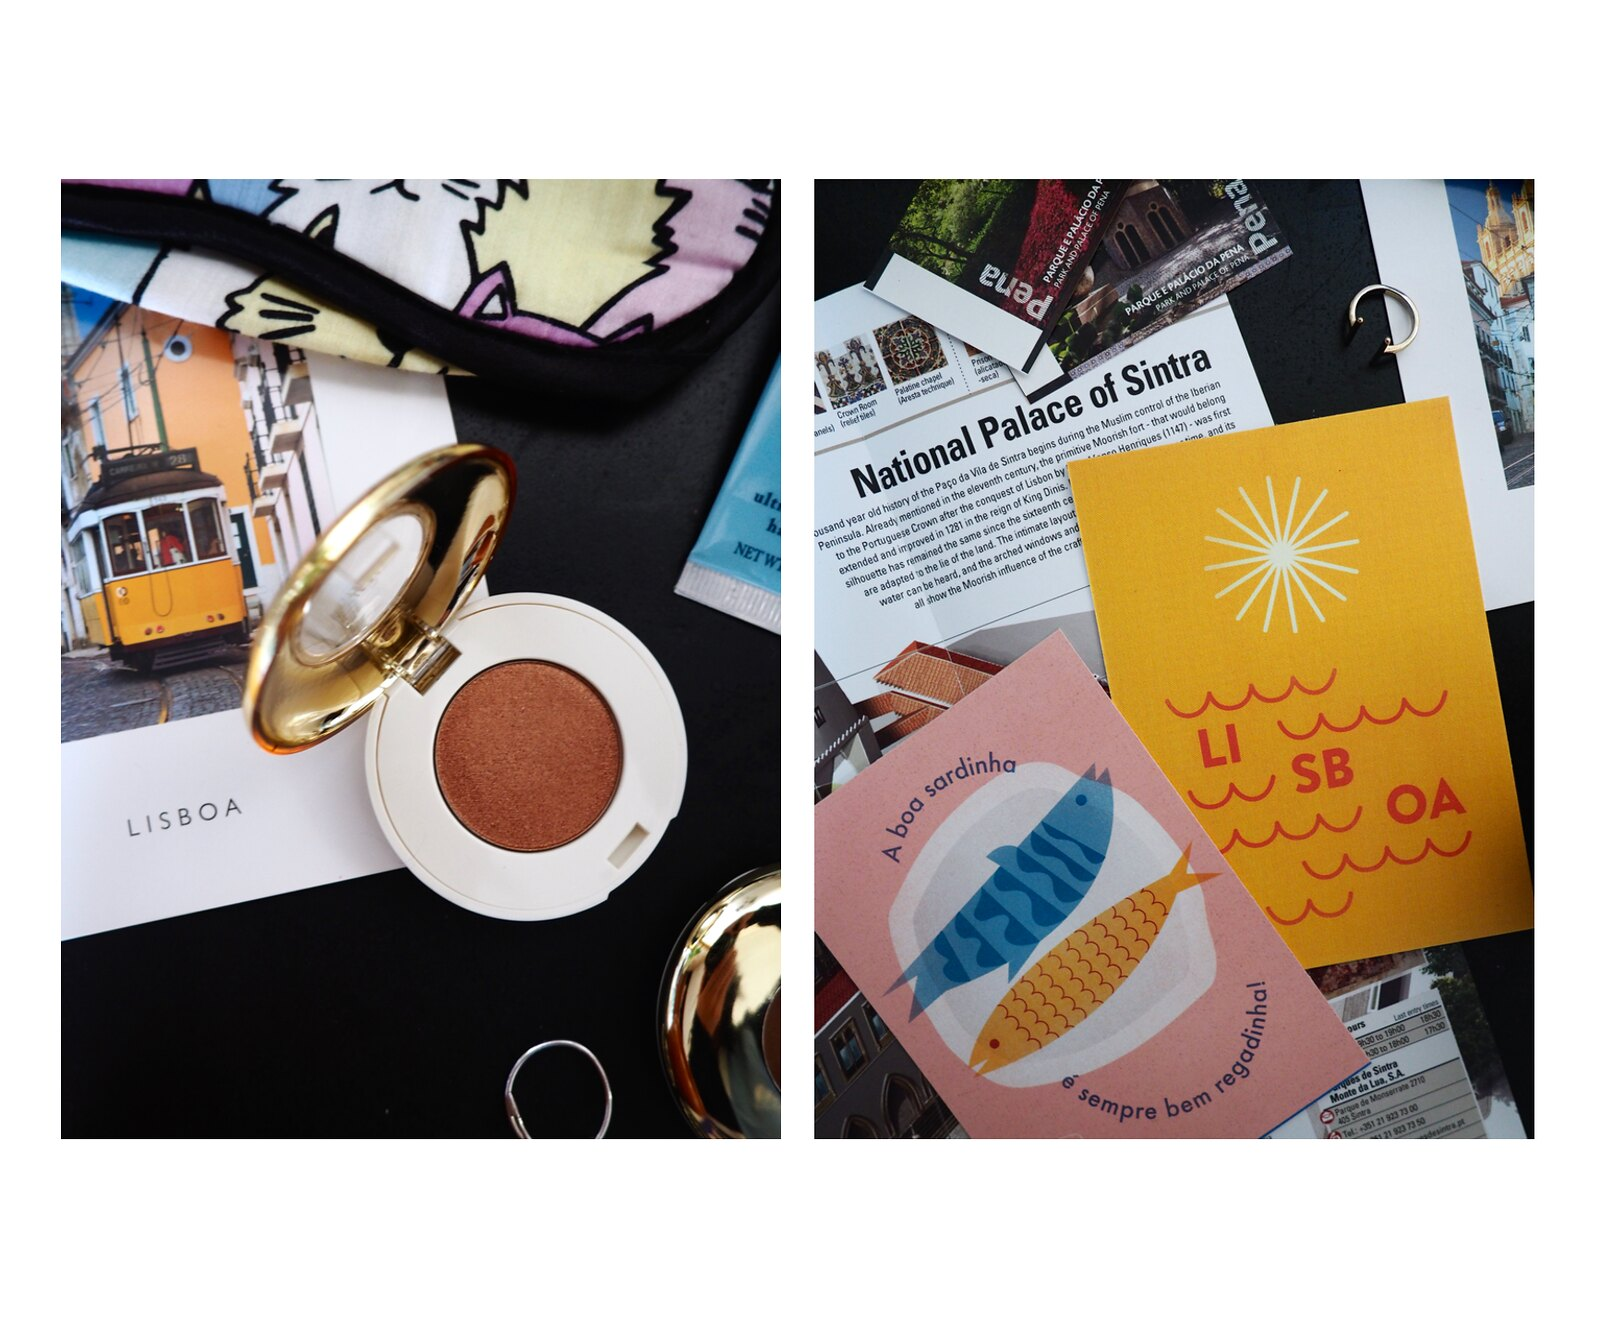 lisbon-haul-hm-makeup-travel-postcard-corrupting-miffy